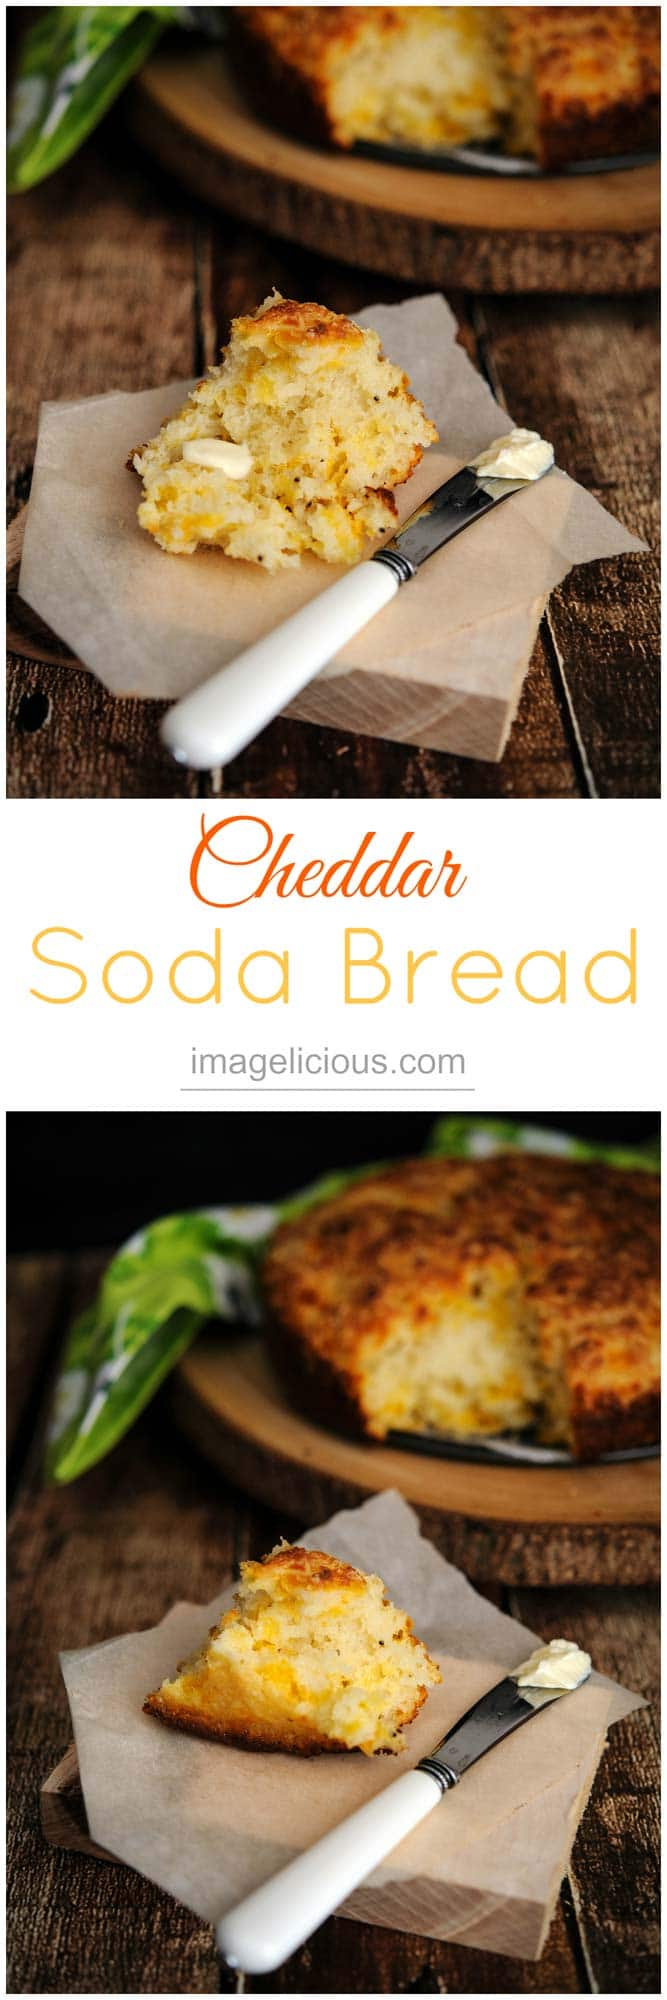 This delicious fluffy and cheesy Cheddar Soda Bread is easy and fast to make for any day of the week